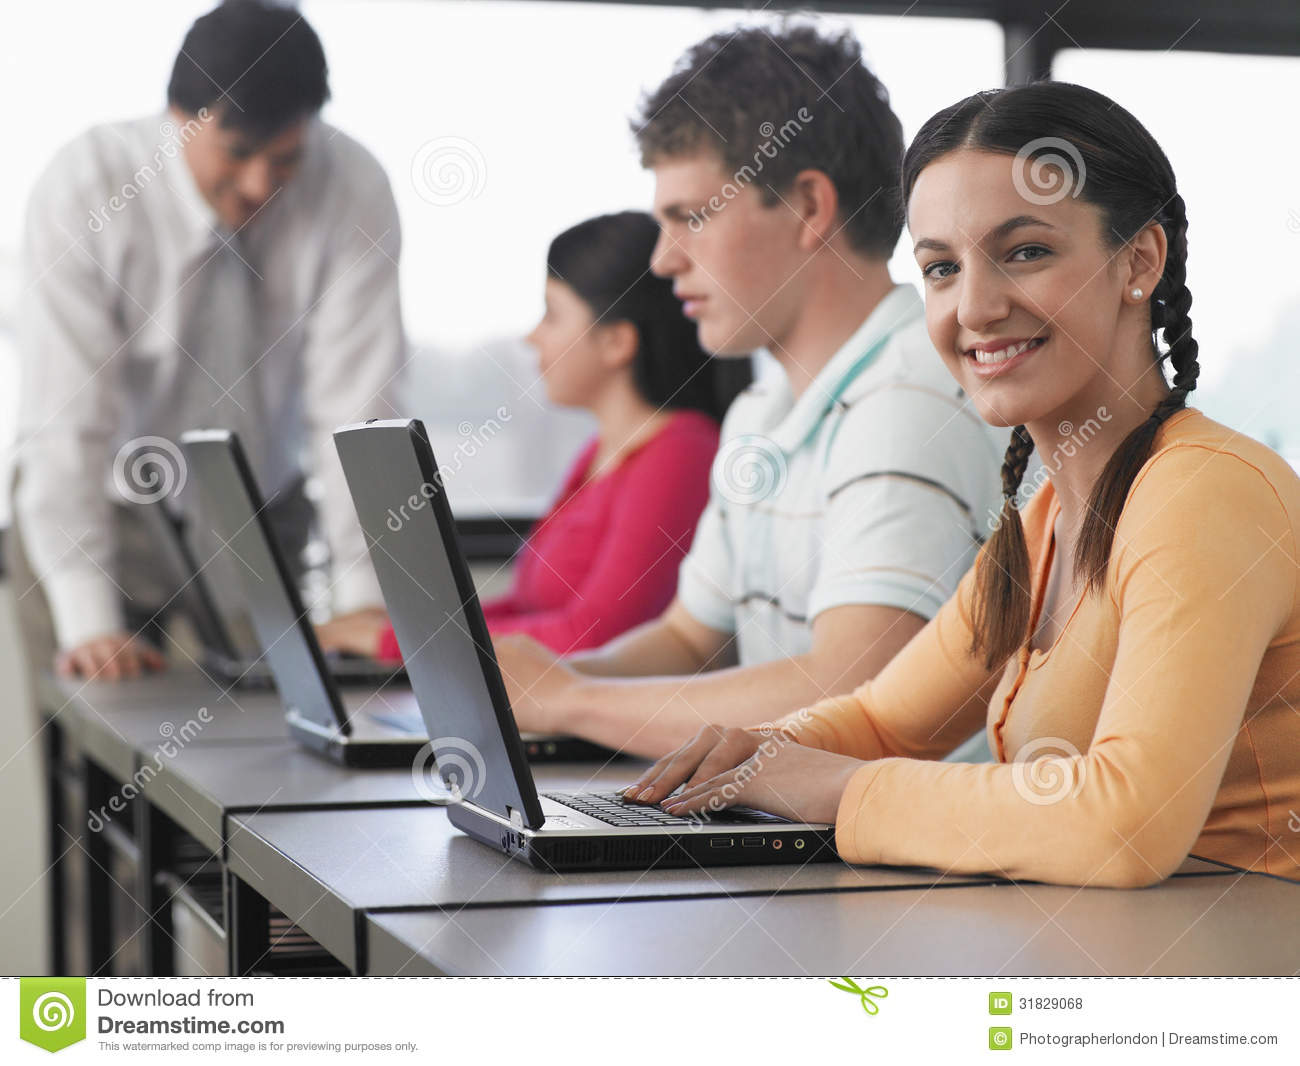 Laptops in the Classroom – Pros, Cons, and Policies